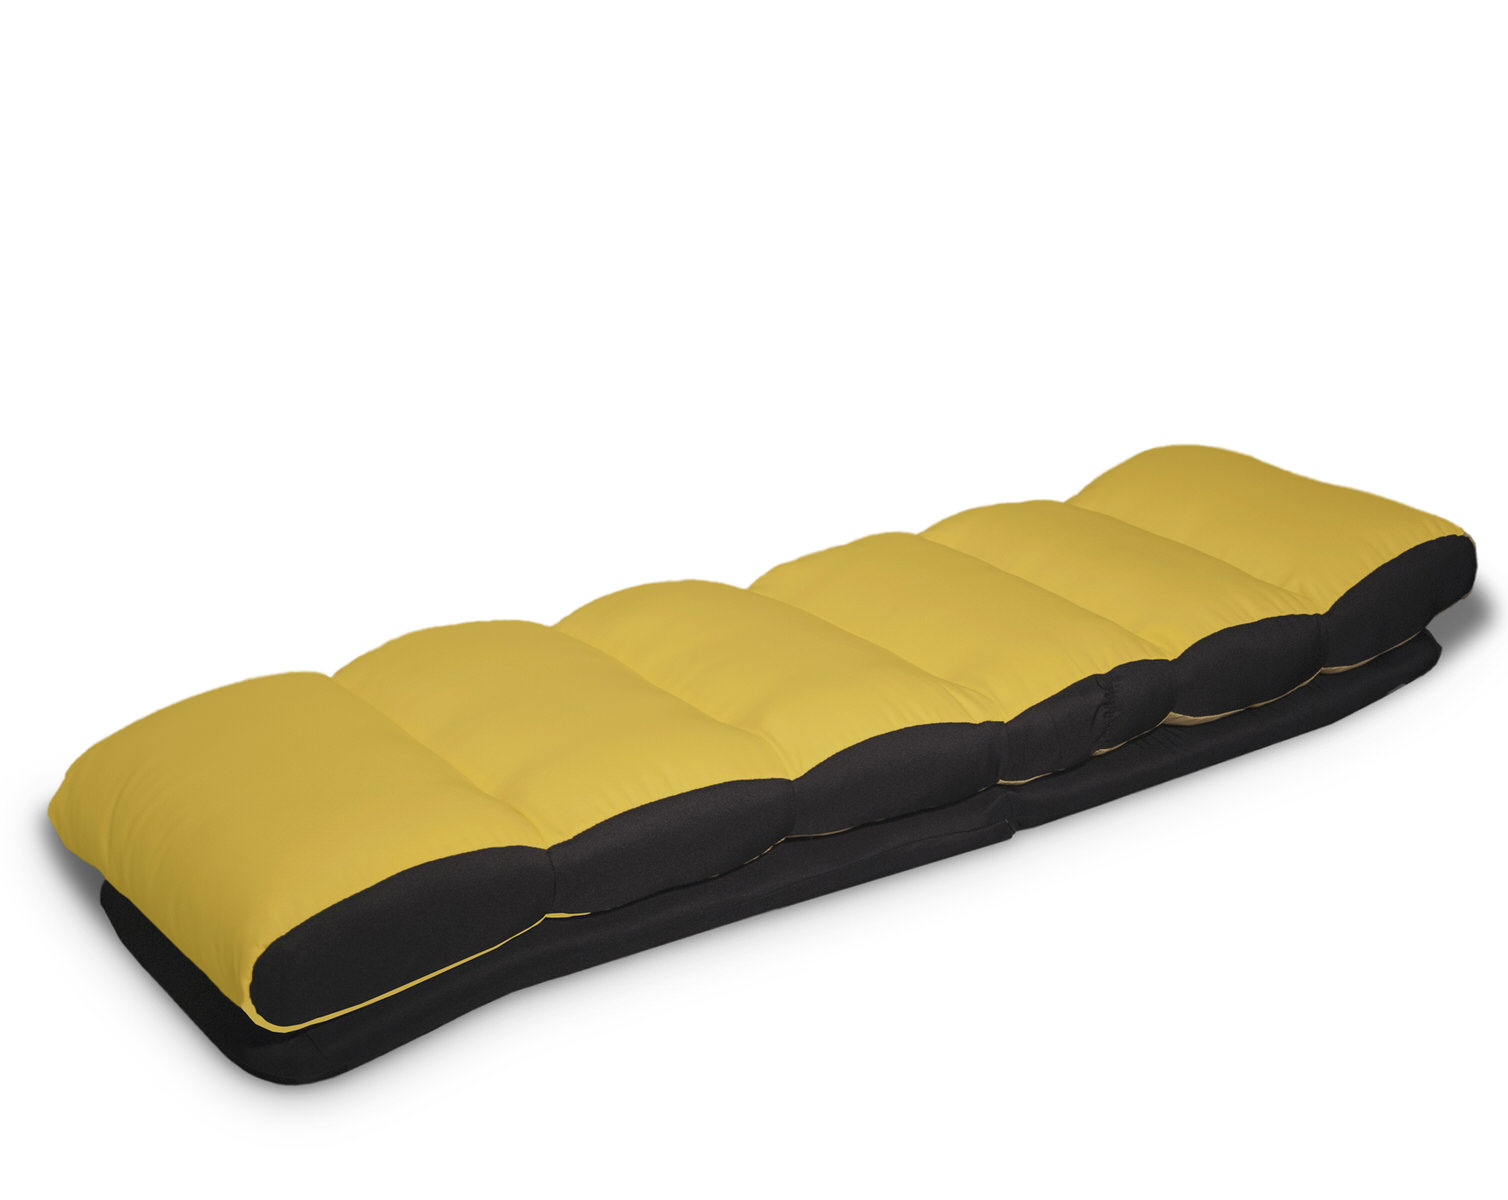 Turbo Lounger Convertible Chair Bed Yellow by Serta Lifestyle